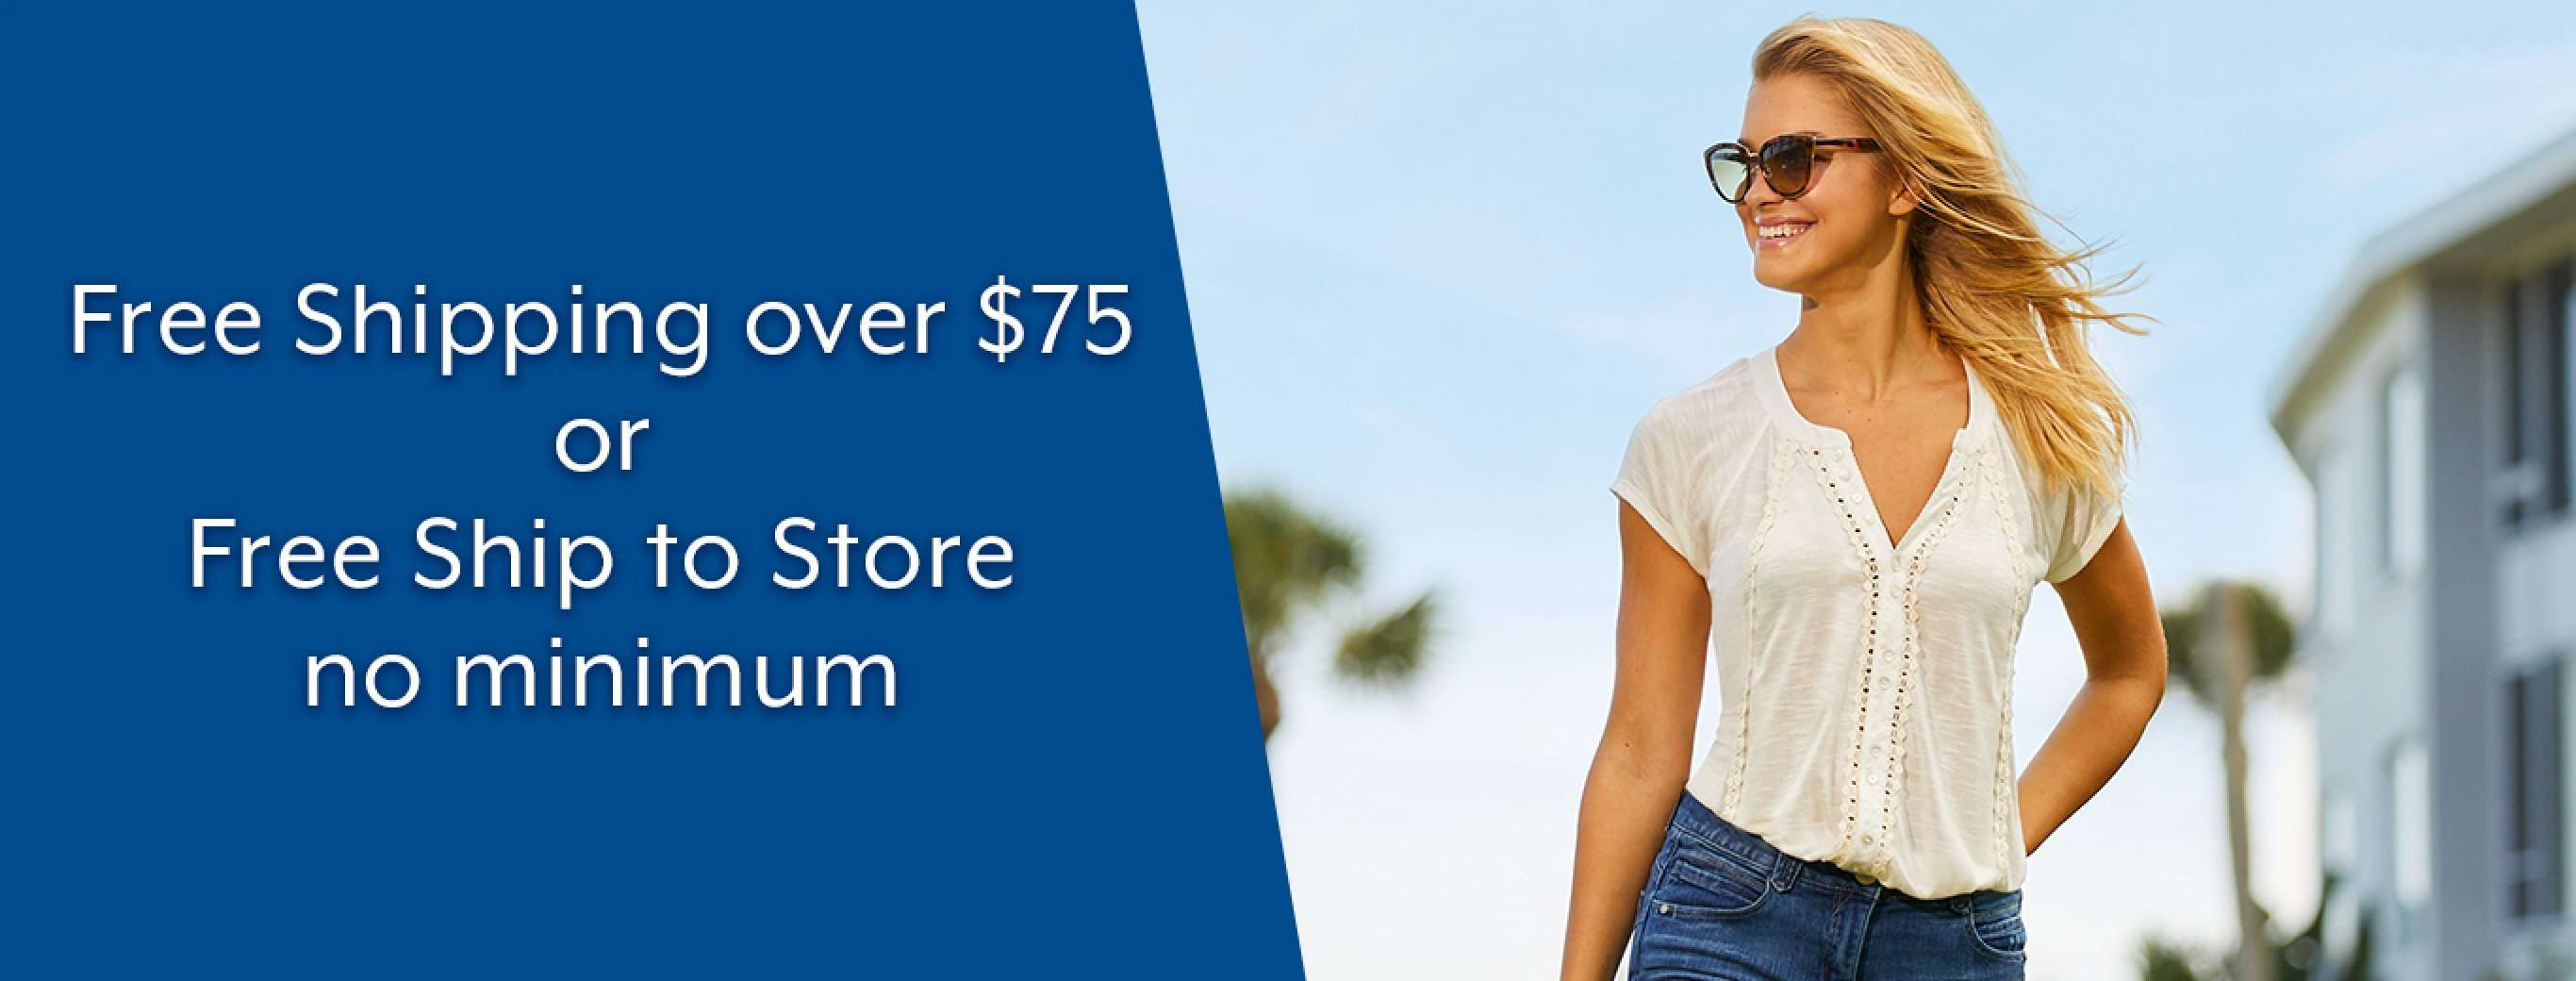 Free Shipping over $75 or Free Ship to Store no minimum